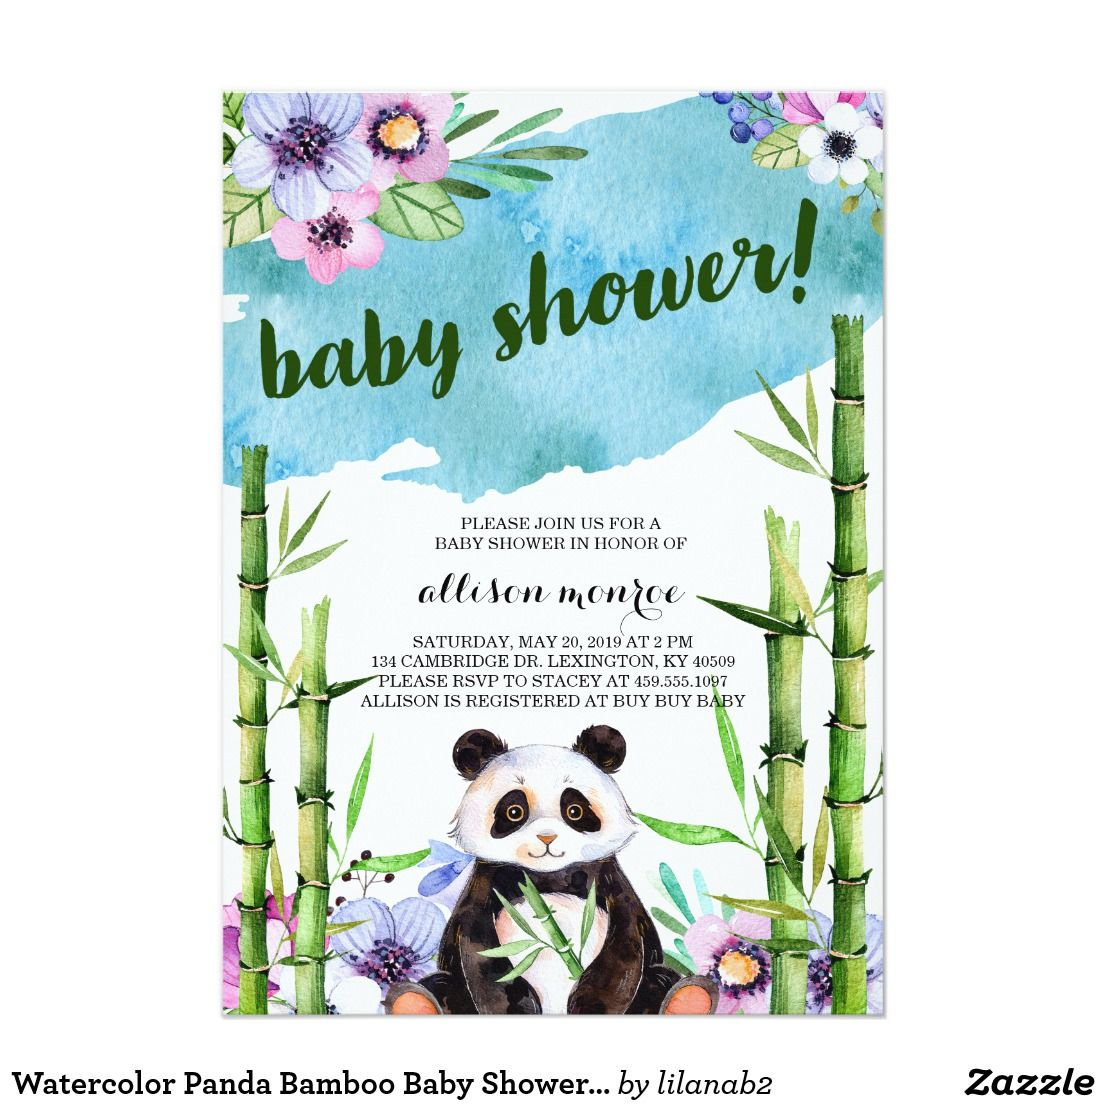 Watercolor Panda Bamboo Baby Shower Invitation | Shower invitations